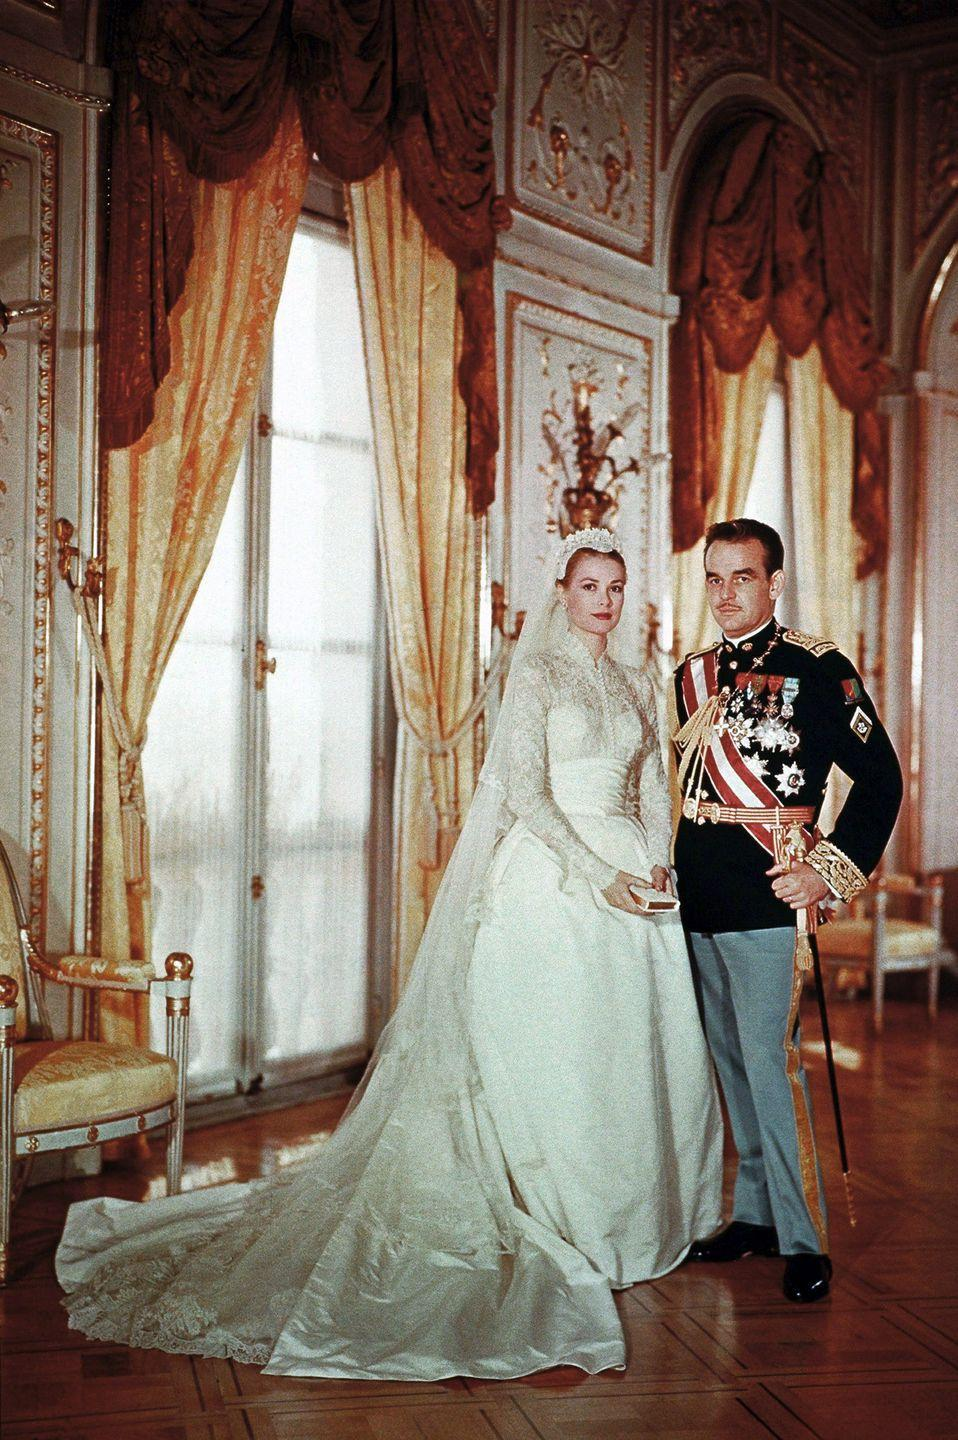 "<p><span class=""redactor-unlink"">Princess Grace Kelly of Monaco</span> married Prince Rainier in the Palace Throne Room of Monaco on April 18, 1956. Designed by Academy Award-winning costume designer Helen Rose, <a href=""https://www.townandcountrymag.com/society/tradition/a12787551/grace-kelly-wedding/"" rel=""nofollow noopener"" target=""_blank"" data-ylk=""slk:Princess Grace's wedding dress was the ultimate fairy princess look"" class=""link rapid-noclick-resp"">Princess Grace's wedding dress was the ultimate fairy princess look</a>, complete with an embroidered pearl and Brussels lace bodice.</p>"